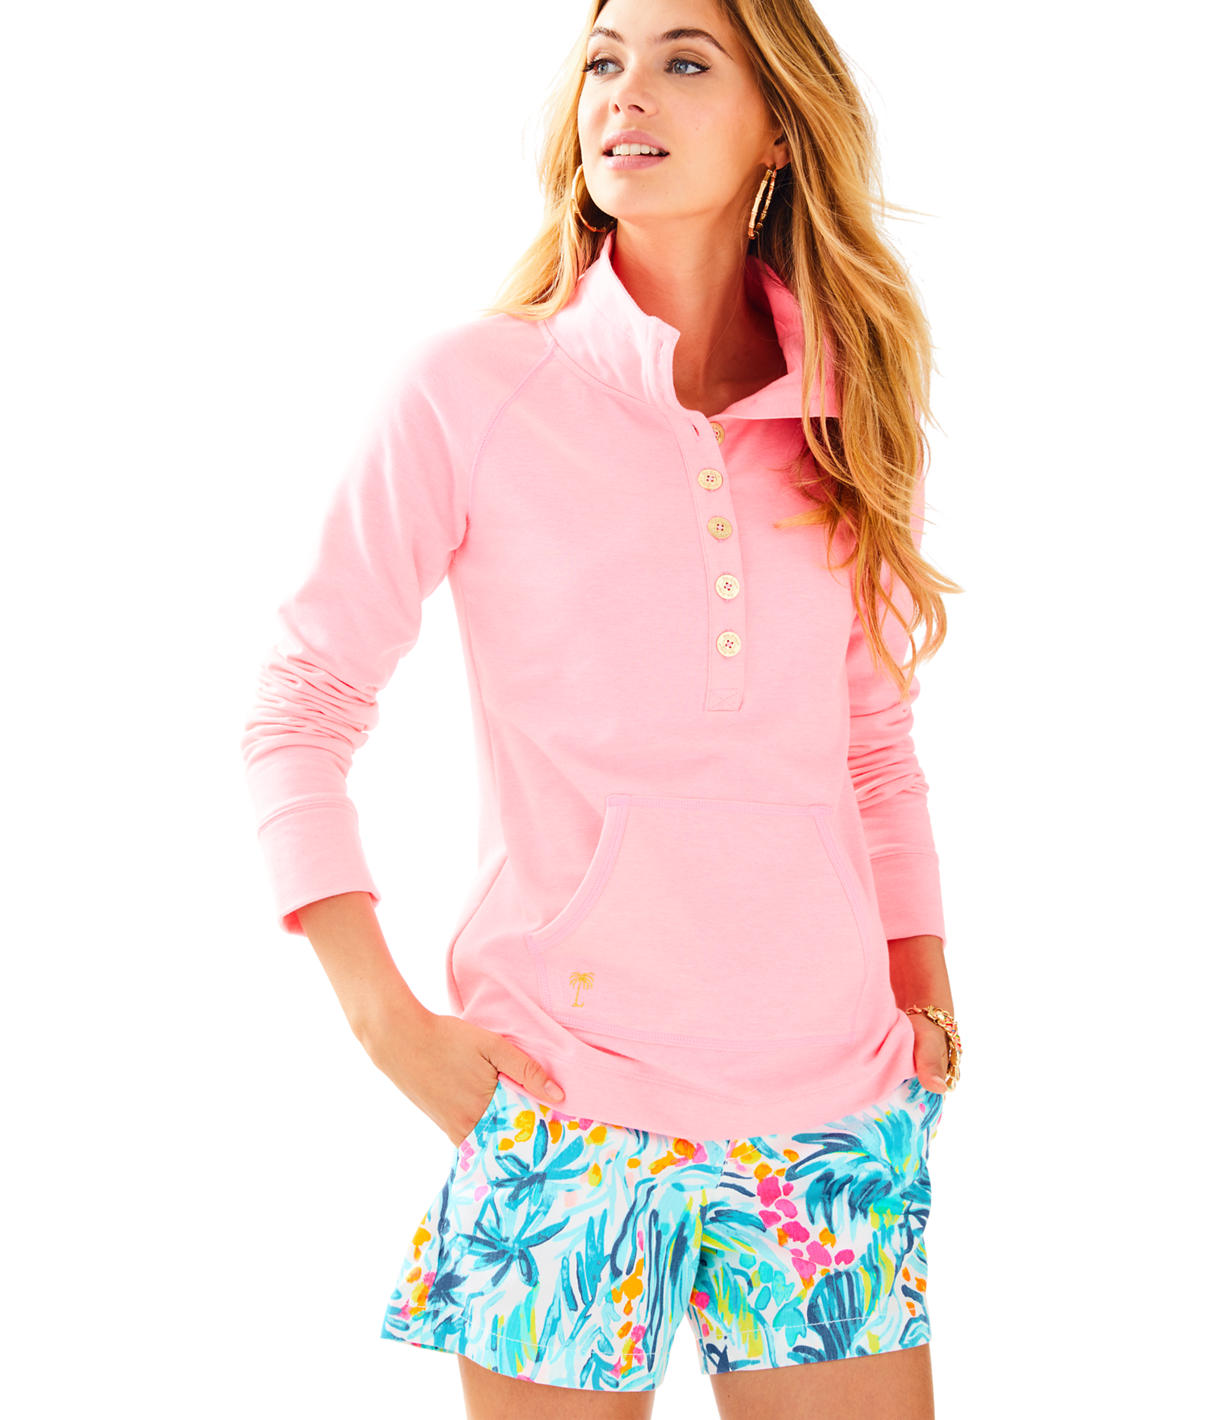 Lilly Pulitzer Lilly Pulitzer Womens UPF 50+ Captain Popover